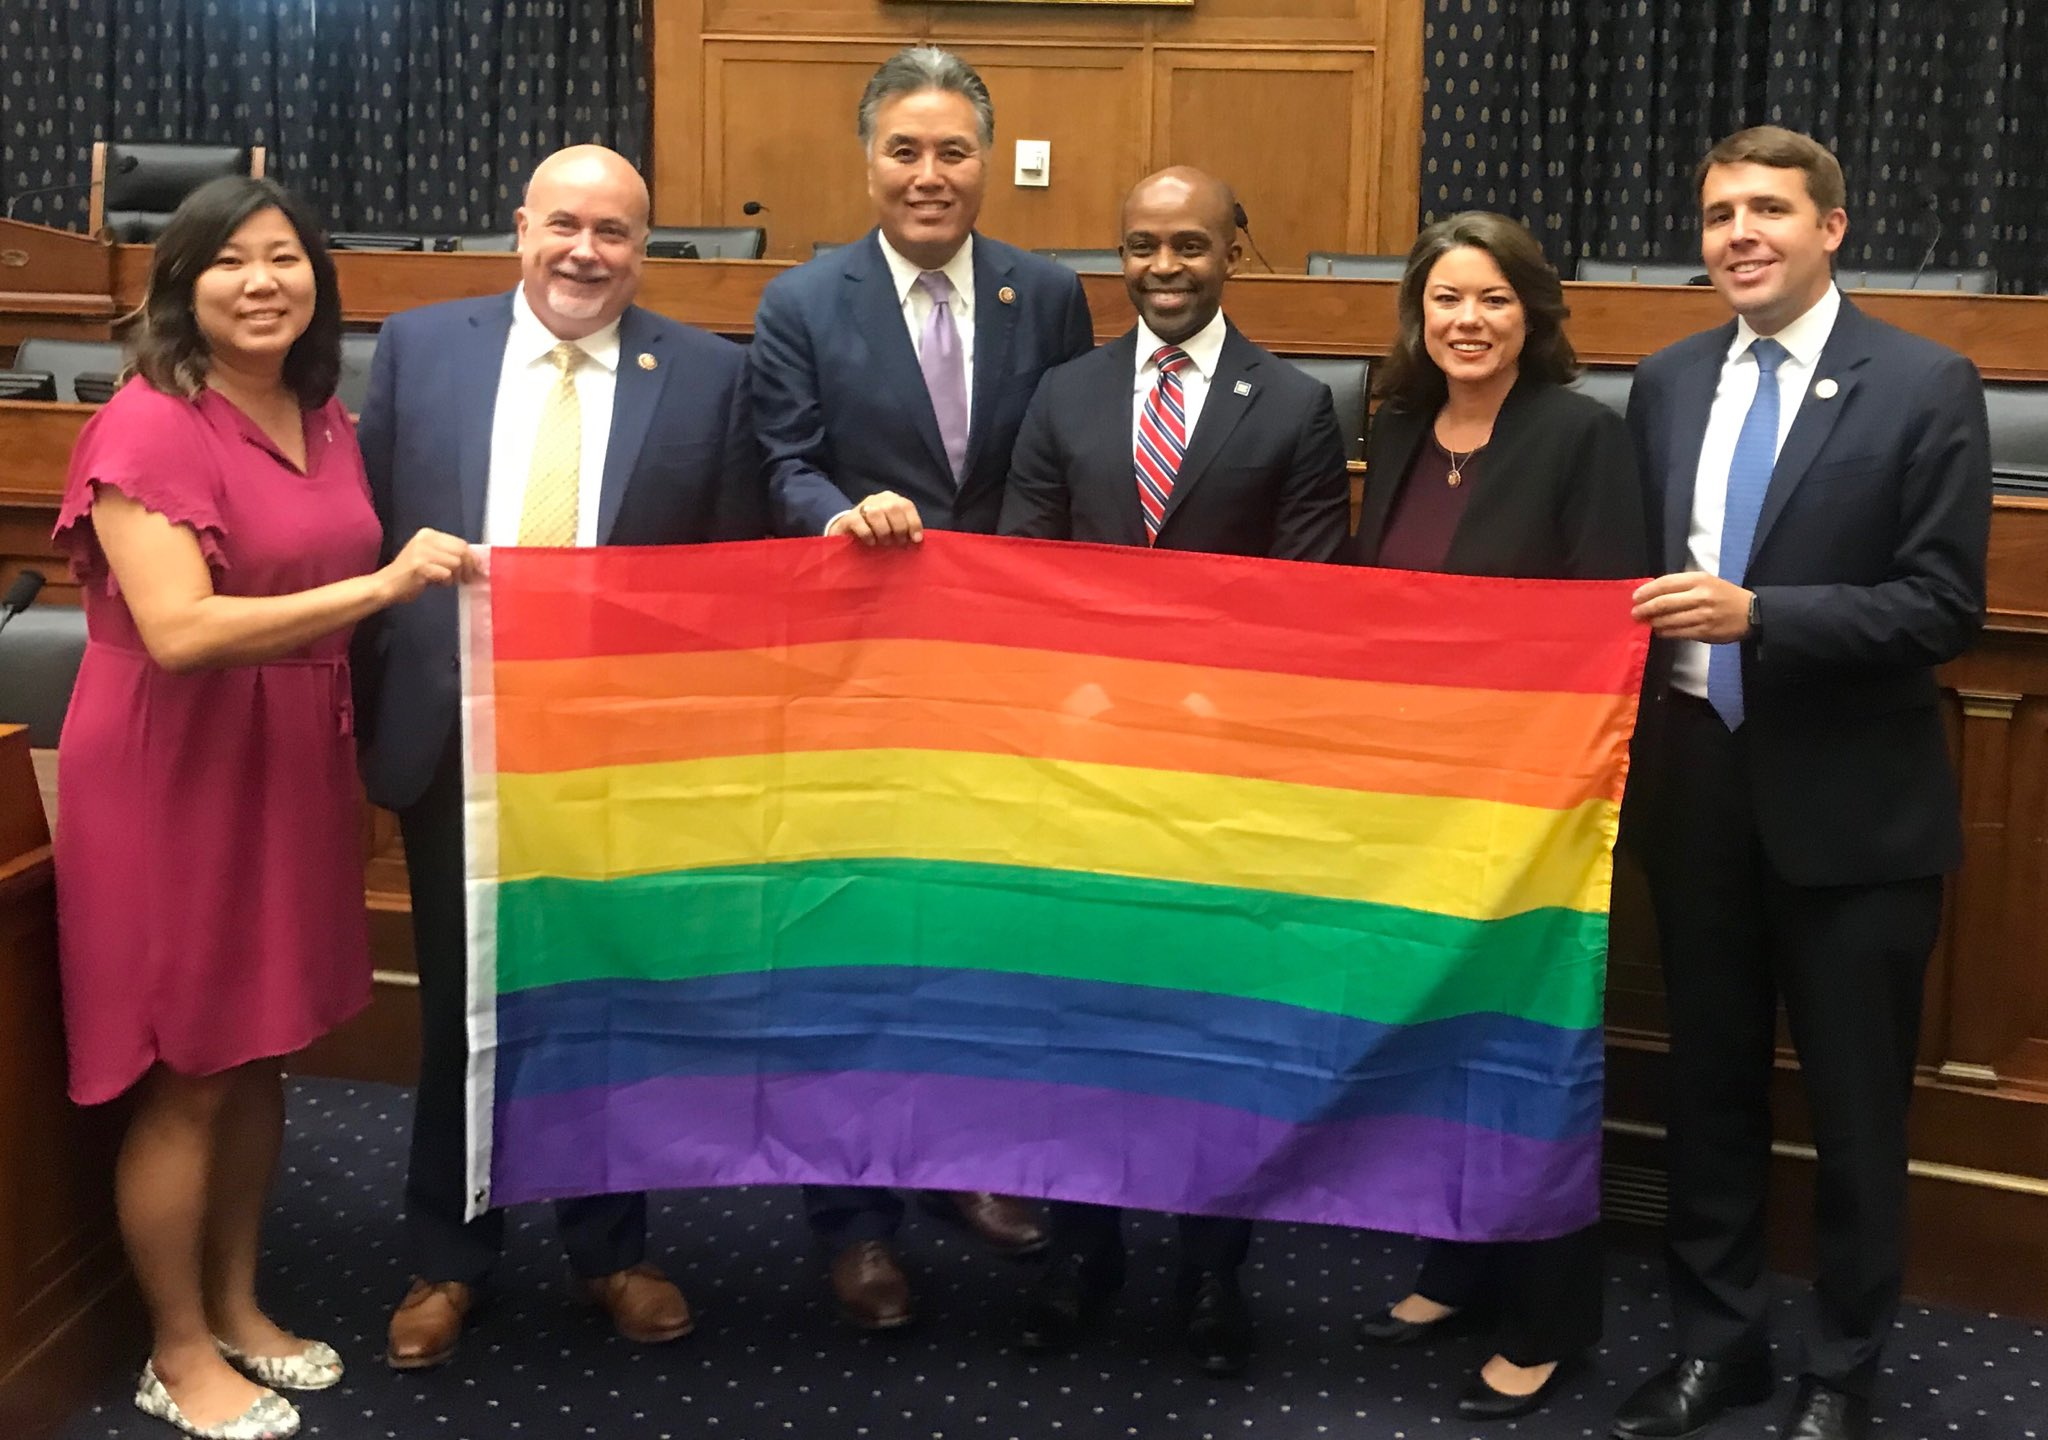 RT @LGBTEqCaucus: Co-Chairs ⁦@RepAngieCraig⁩ ⁦@repmarkpocan⁩ ⁦@RepChrisPappas⁩ ⁦@RepMarkTakano⁩ and Vice Chair ⁦@RepGraceMeng⁩ had a great discussion with @HRC President Alphonso David on moving forward LGBTQ+ priorities 🏳️‍🌈 #ForThePeople https://t.co/dt0sZEEk7x